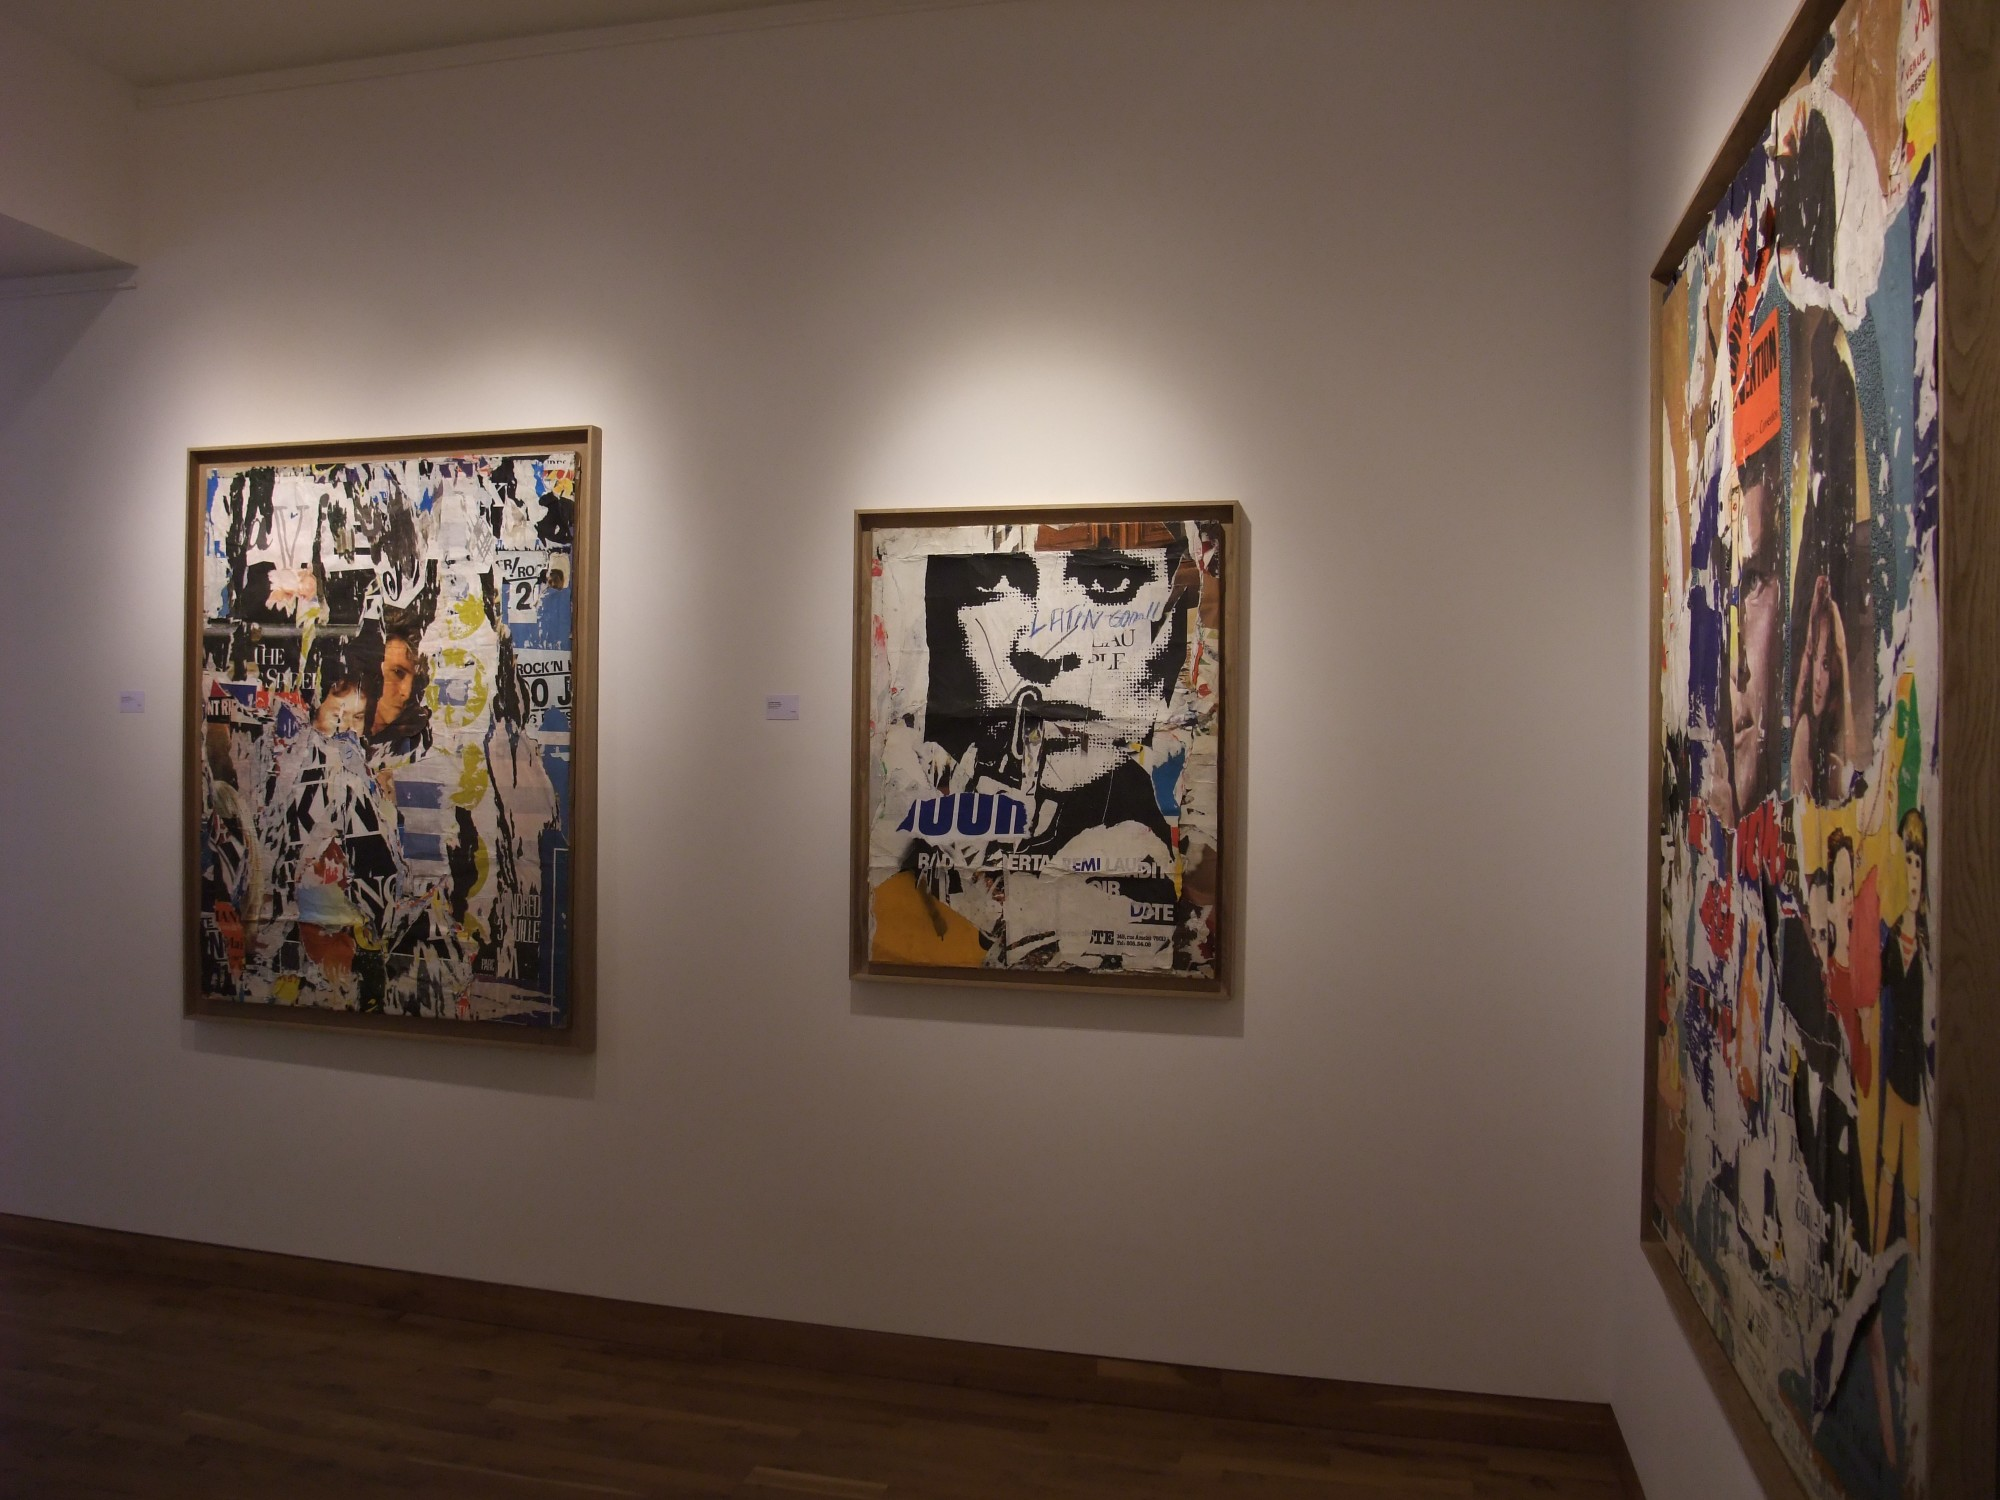 """<span class=""""link fancybox-details-link""""><a href=""""/exhibitions/97/works/image_standalone337/"""">View Detail Page</a></span><p>MIMMO ROTELLA & JACQUES VILLEGLÉ   22 SEP - 24 OCT 2008   Installation View</p>"""